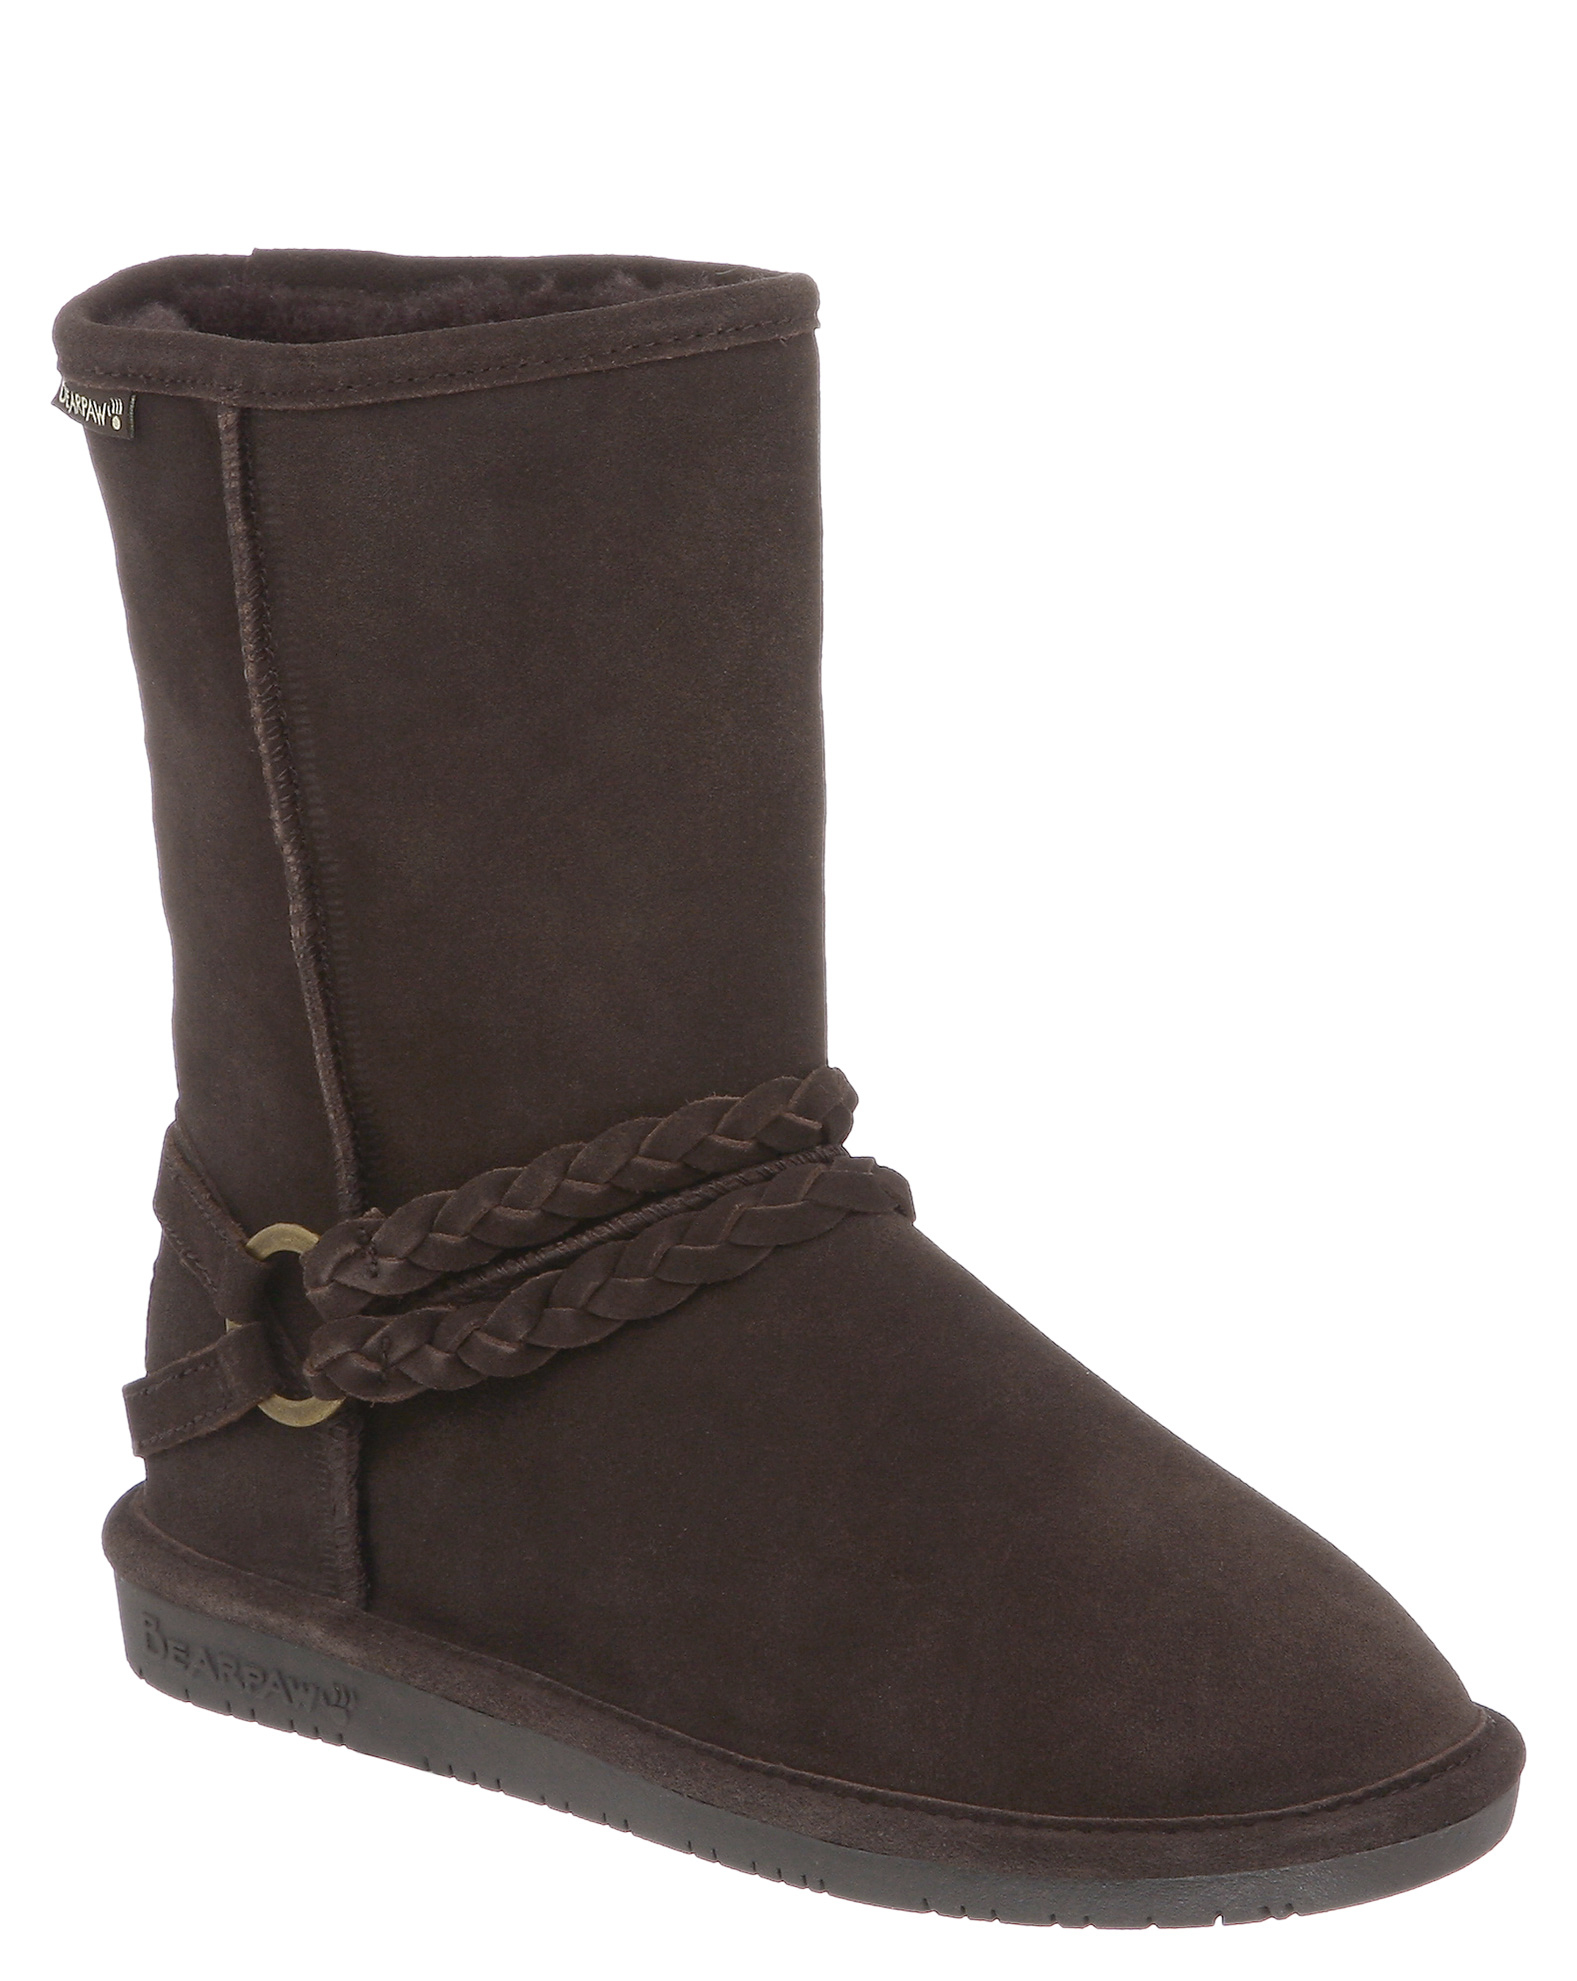 Click here to buy Bearpaw Women